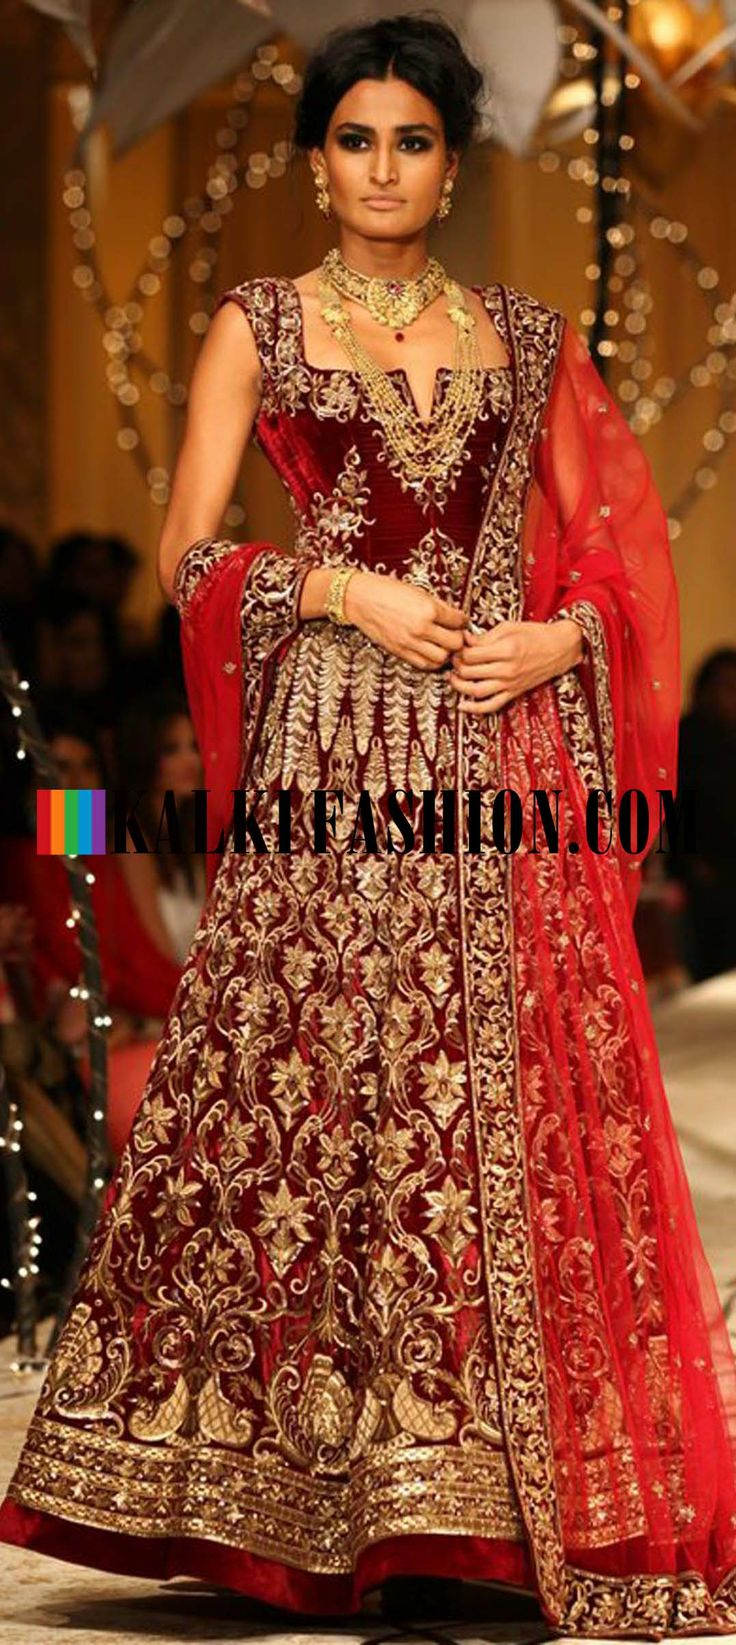 http://www.kalkifashion.com/designers/rohit-bal.html Models showcasing Rohit Bal's fabulous bridal and groom collection at Indian Bridal Fashion Week 2013 at Mumbai